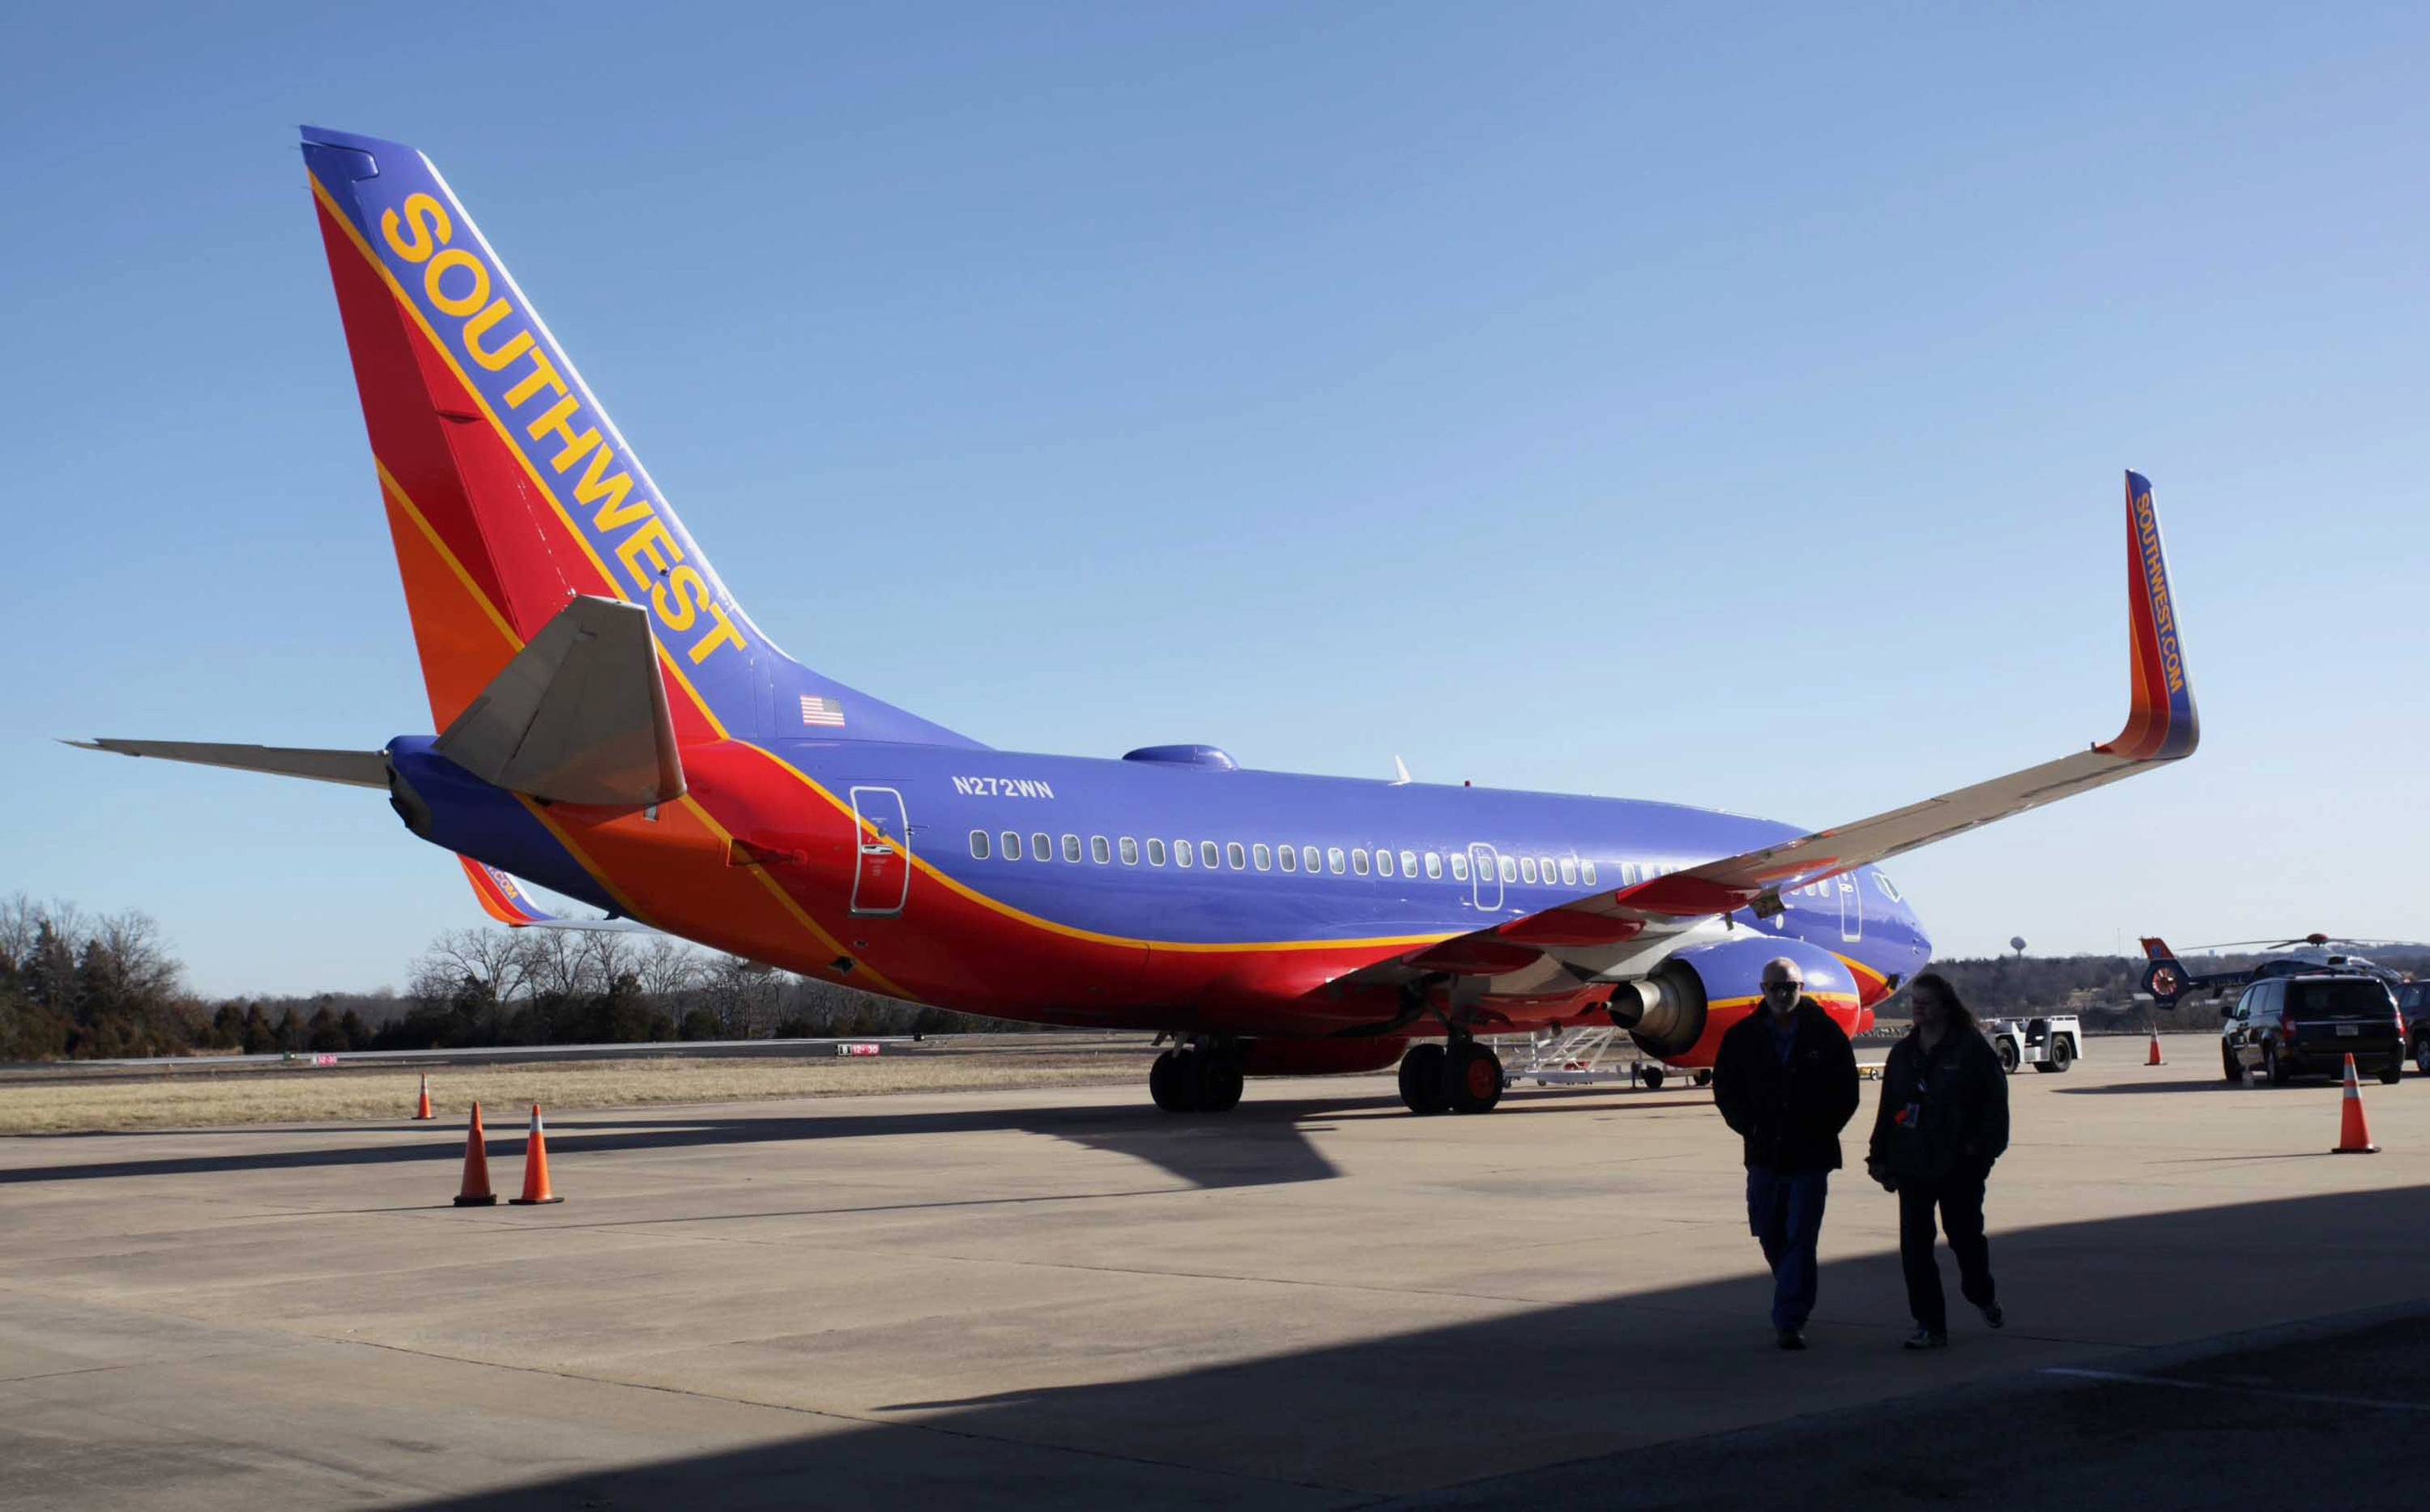 In this Jan. 13, 2014 file photo, Southwest Airlines Flight 4013 sits at the M. Graham Clark Downtown Airport in Hollister, Mo. On nearly 150 flights, U.S. commercial air carriers have either landed at the wrong airport or started to land and realized their mistake in time, according to a search by The Associated Press of government safety databases and media reports since the early 1990s.